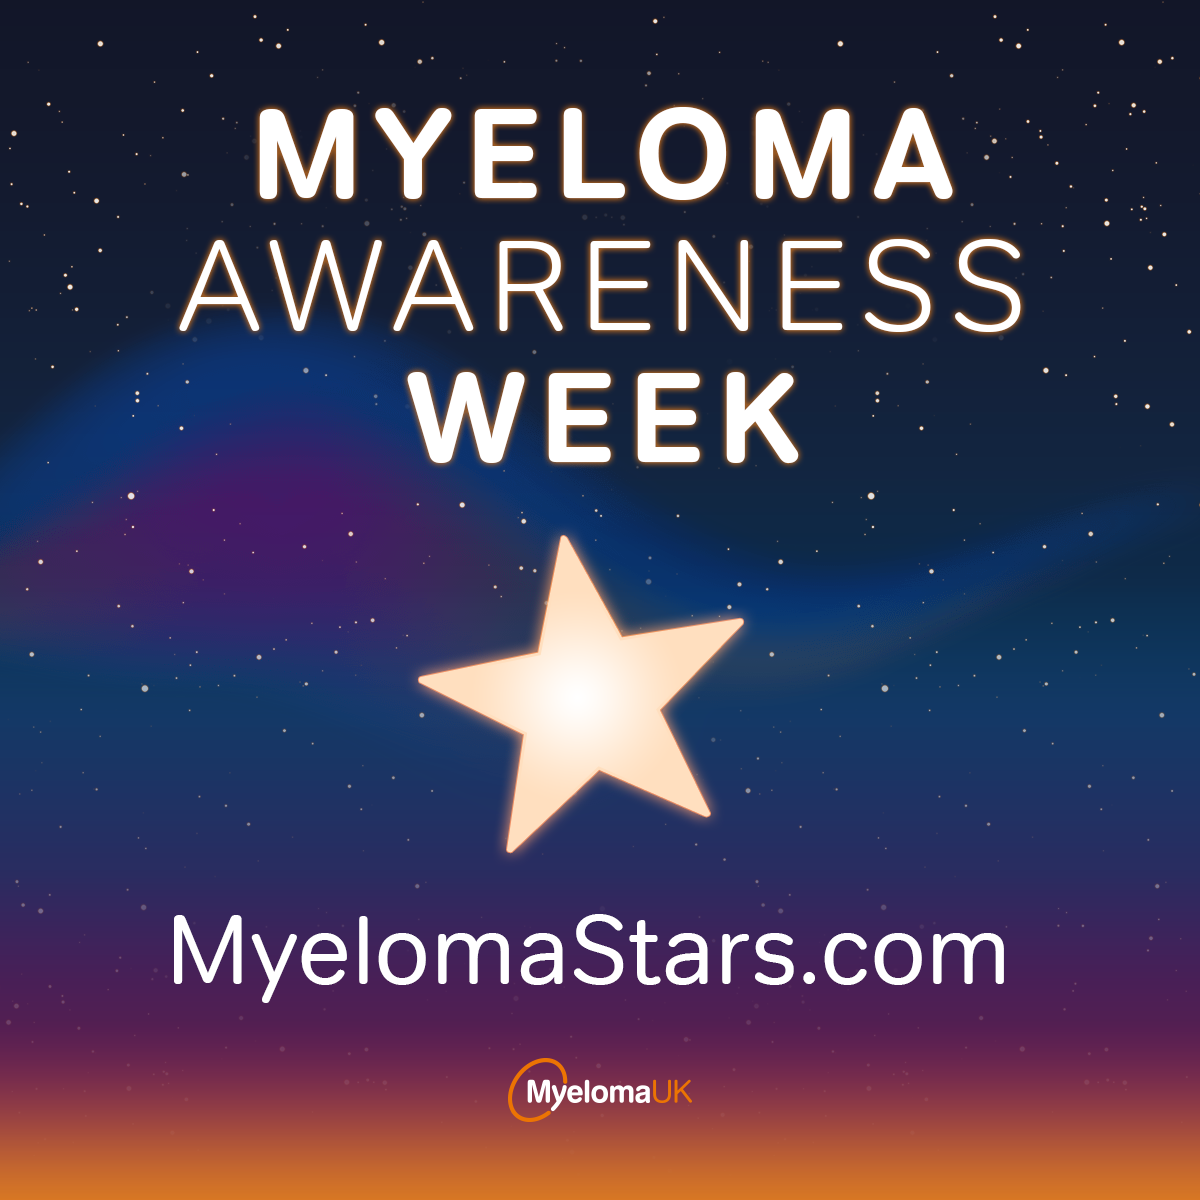 Myeloma UK Awareness Week image